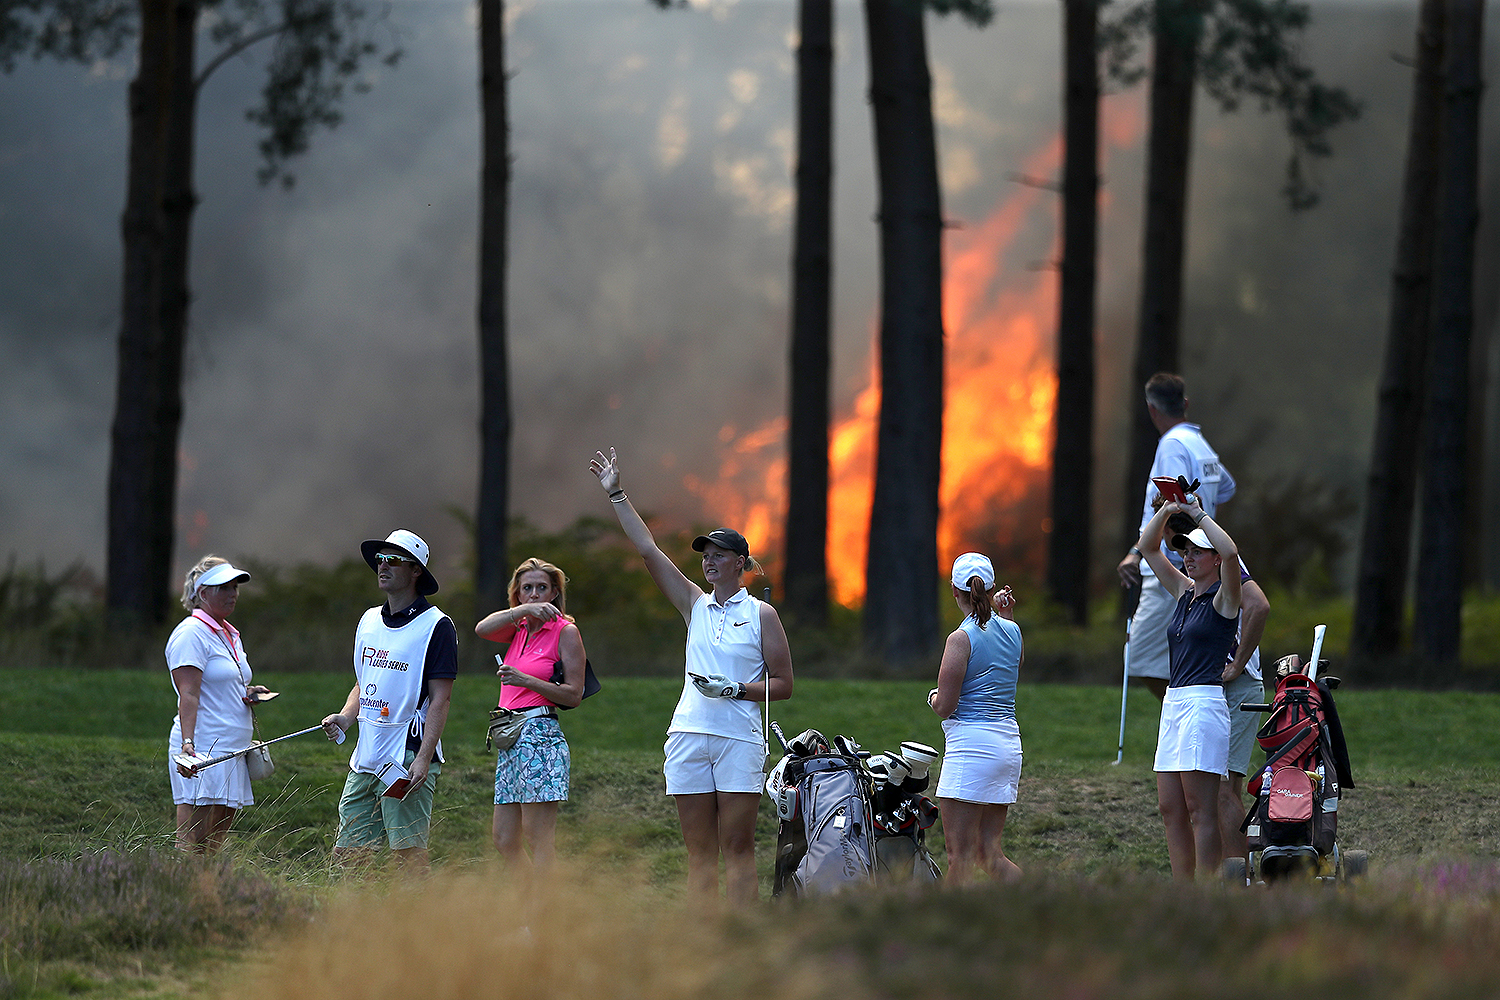 Golfers and their caddies look on as a wildfire nears the 10th hole during the Rose Ladies Series Order of Merit event at Wentworth Golf Club in Virginia Water, England, on Aug. 7. The next day, the final round was canceled because of the wildfires. Naomi Baker/Getty Images